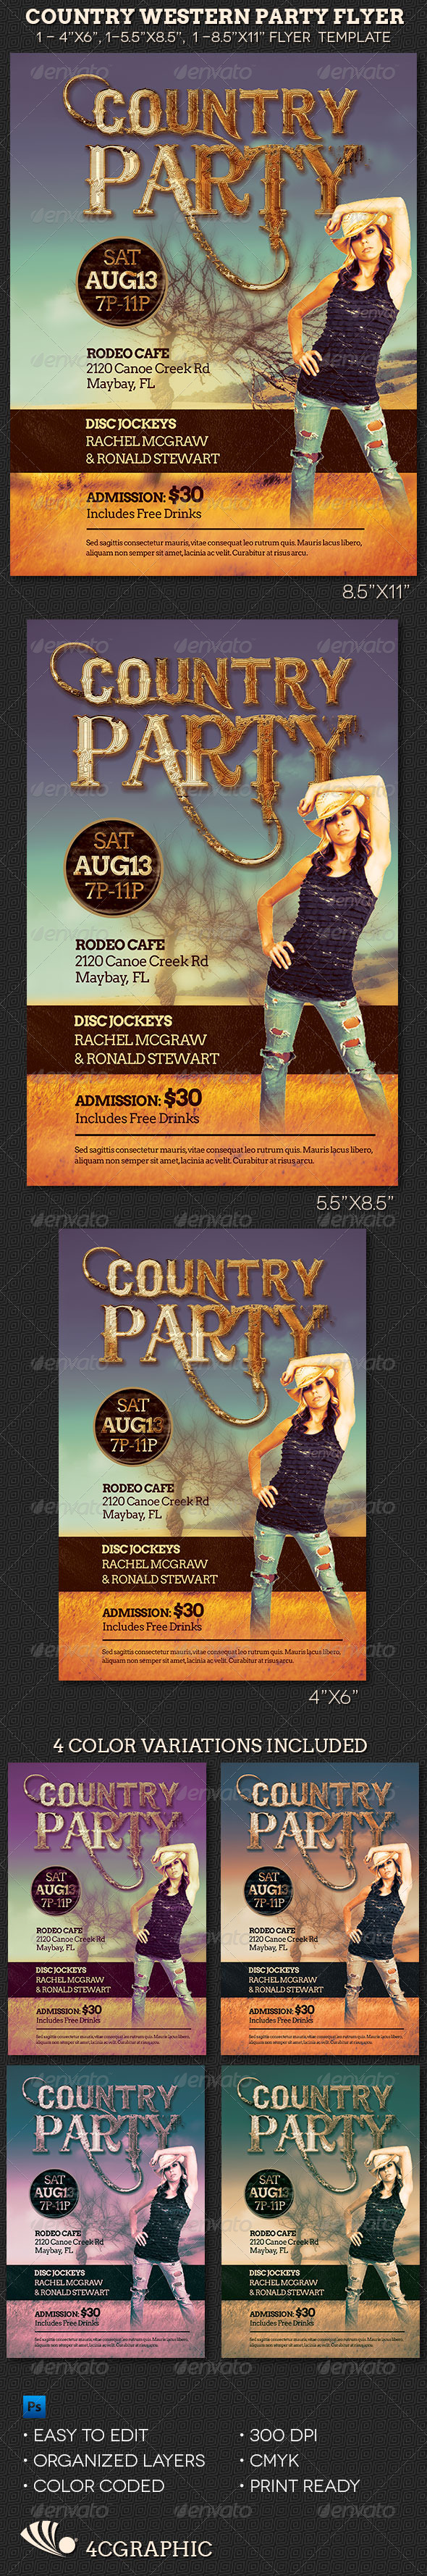 GraphicRiver Country Western Party Flyer Template 8242617